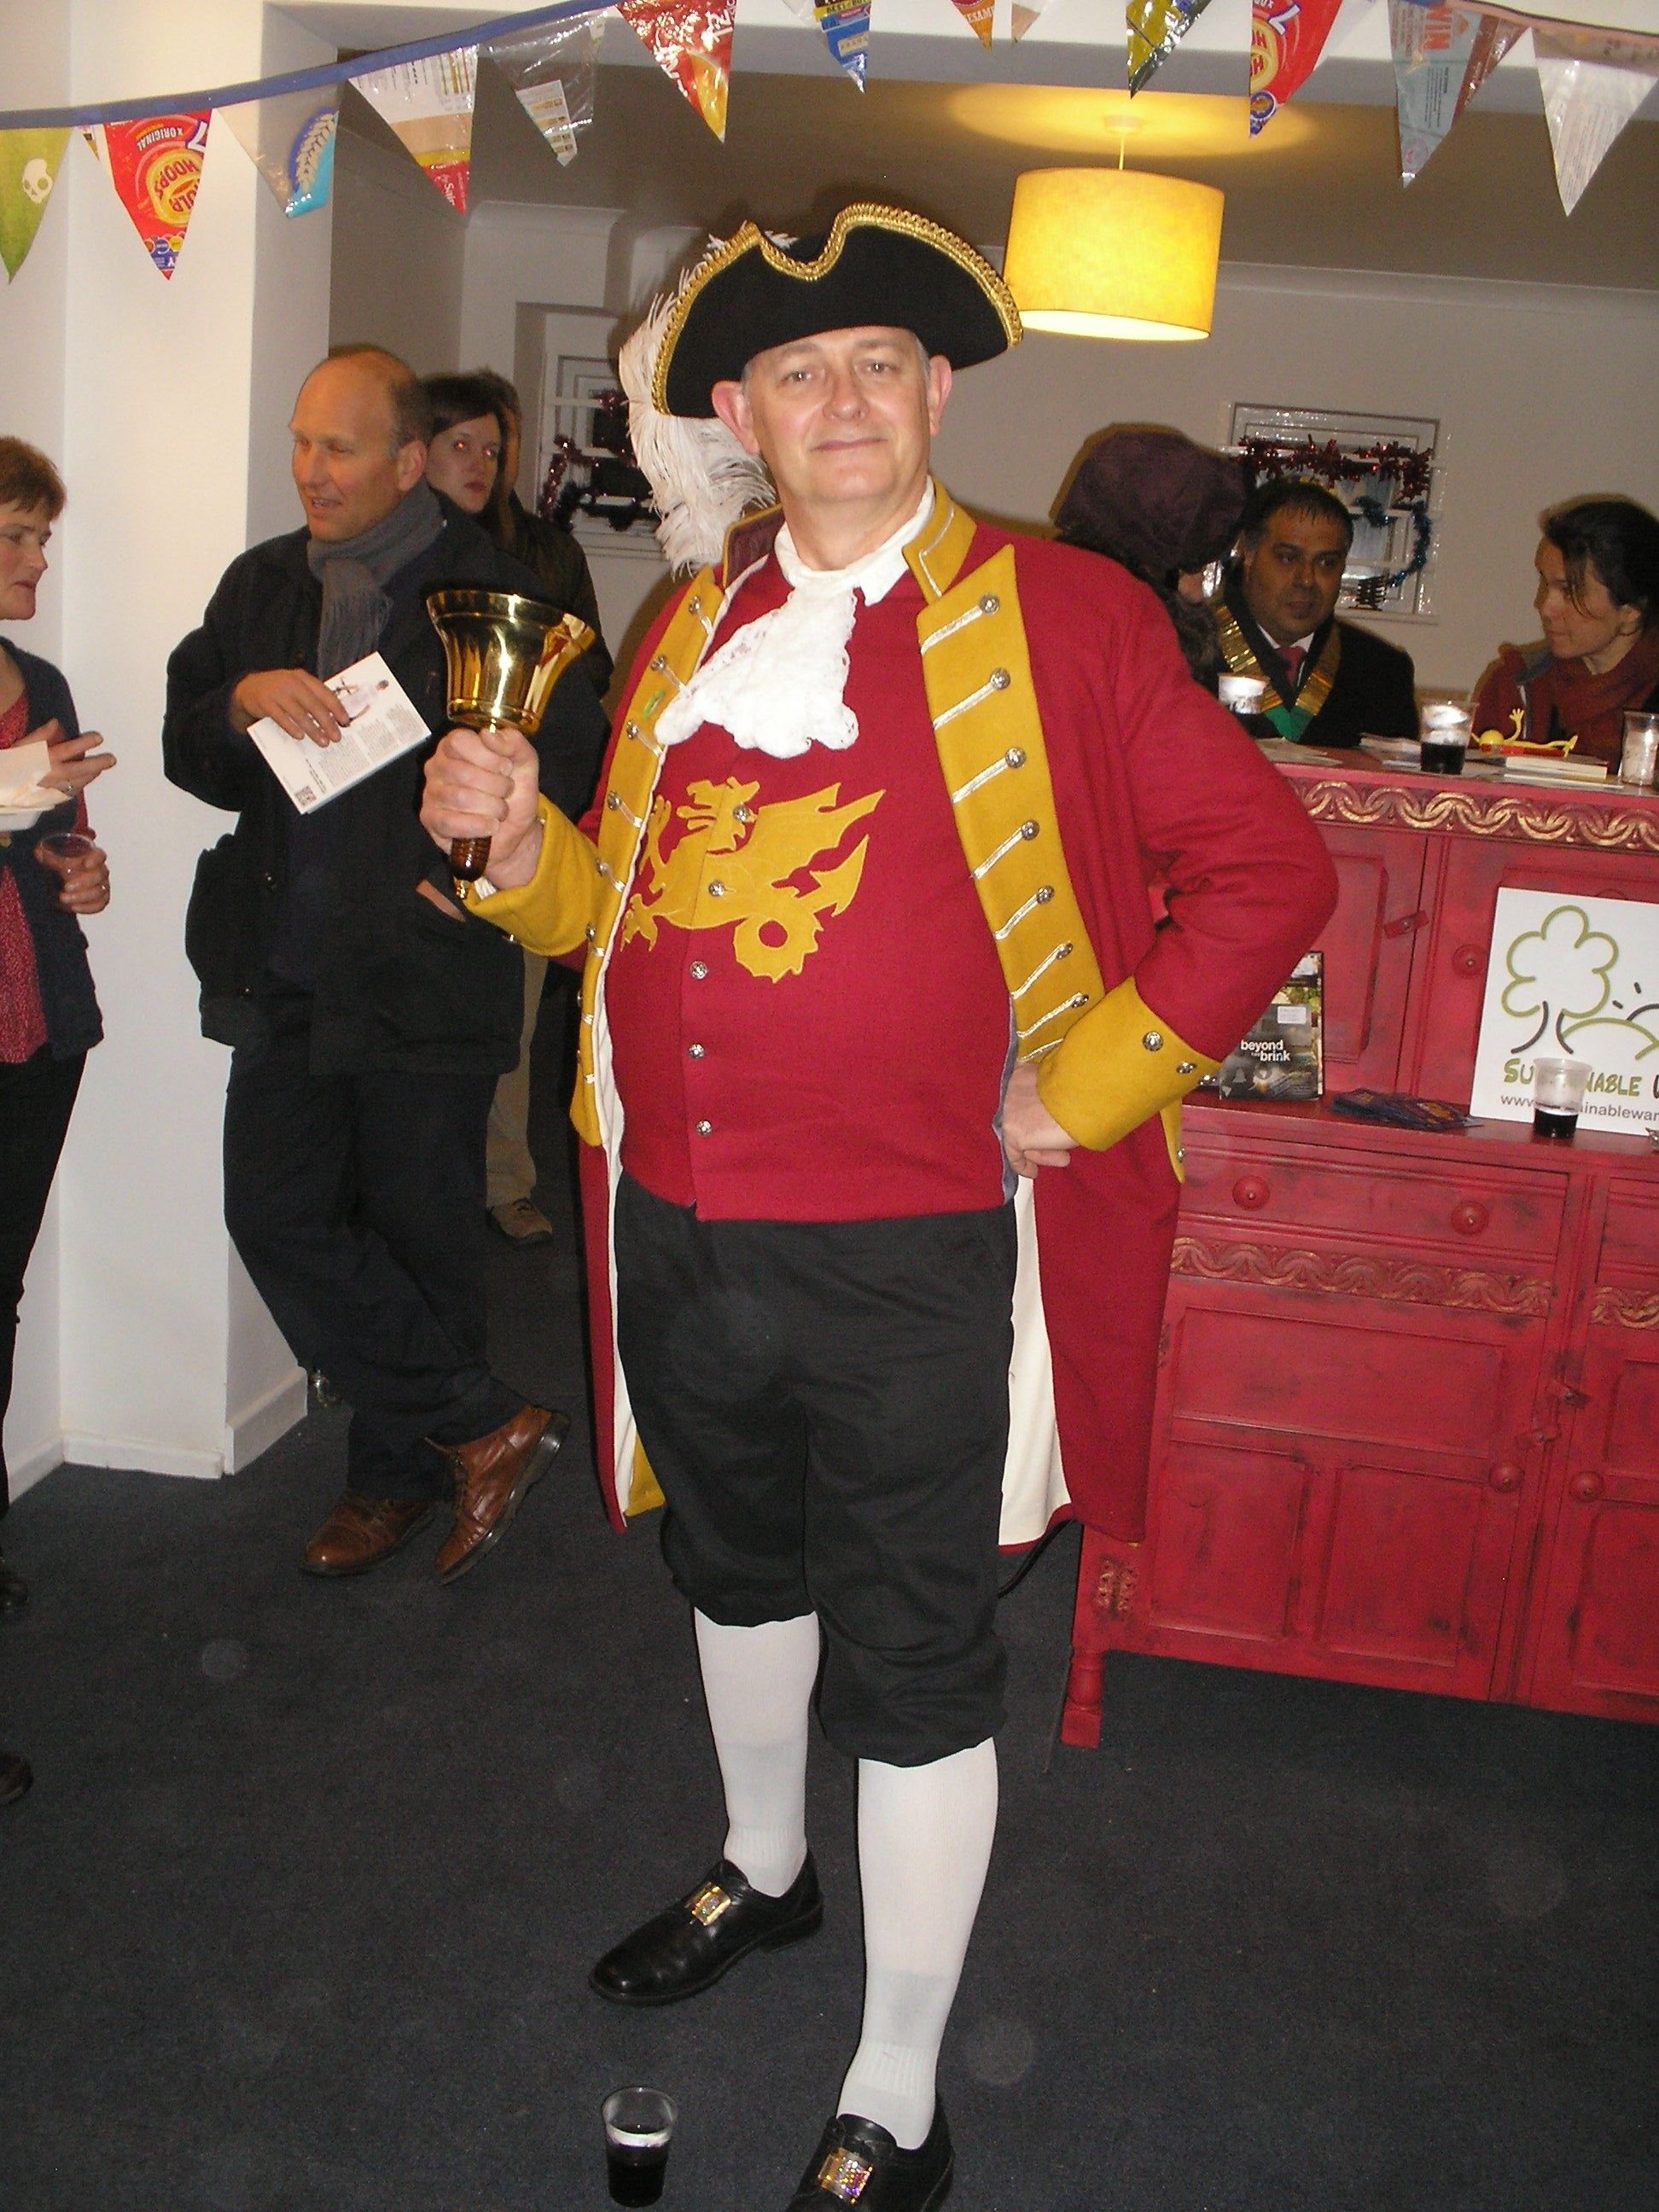 Dave the Town Cryer